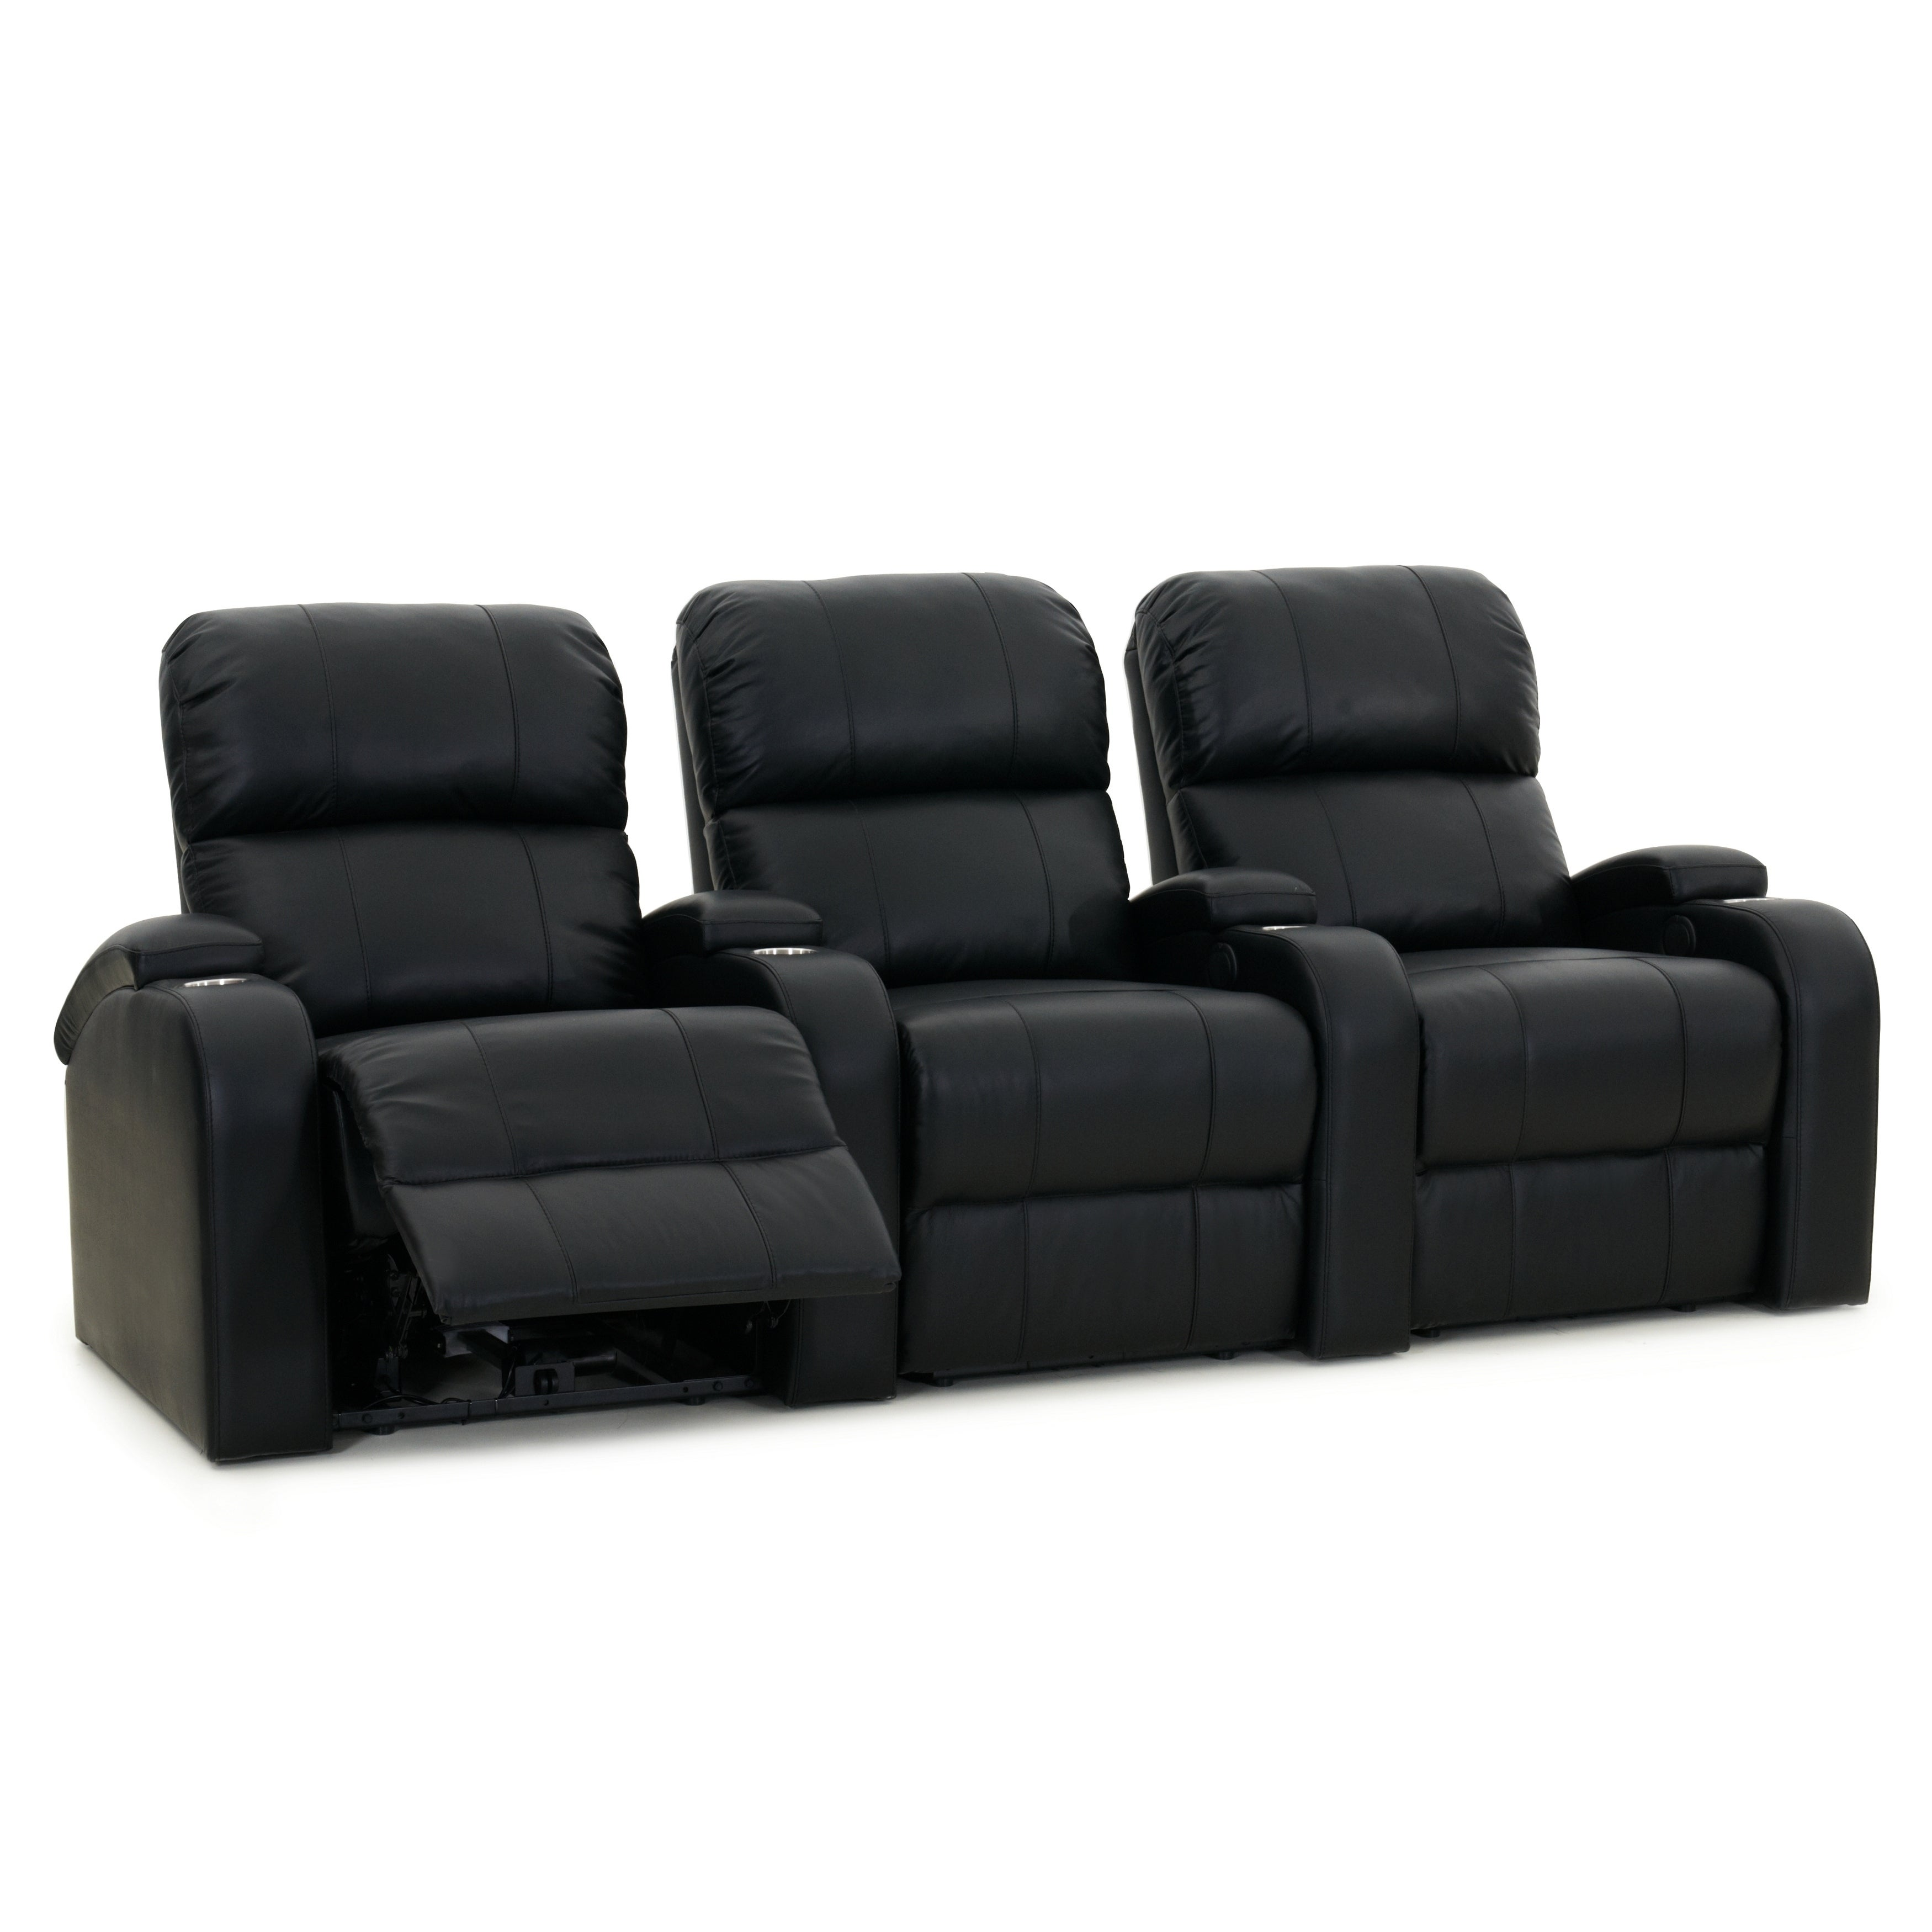 Octane Edge XL800 Manual Leather Home Theater Seating Set...